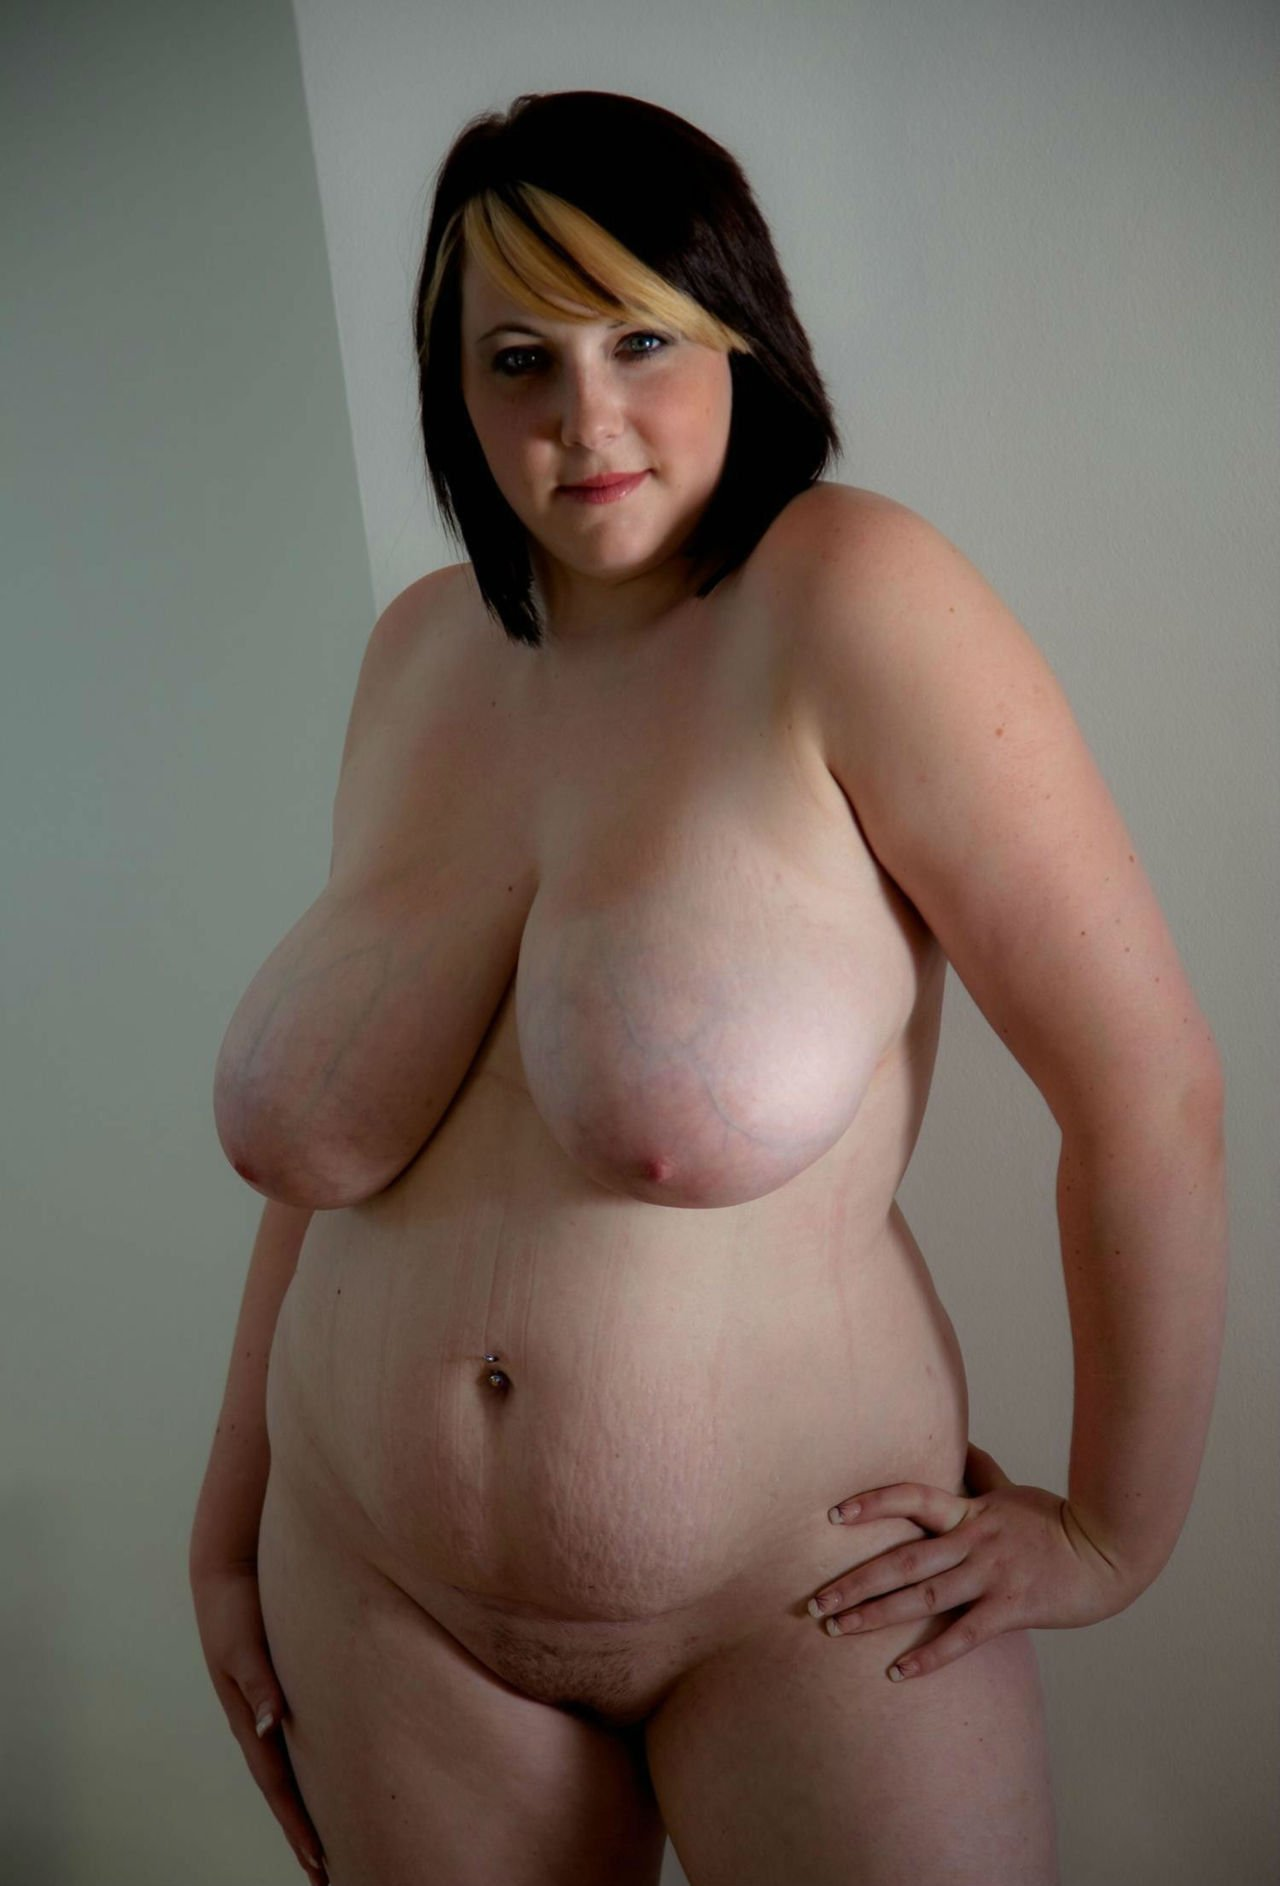 big-fat-chubby-nude-women